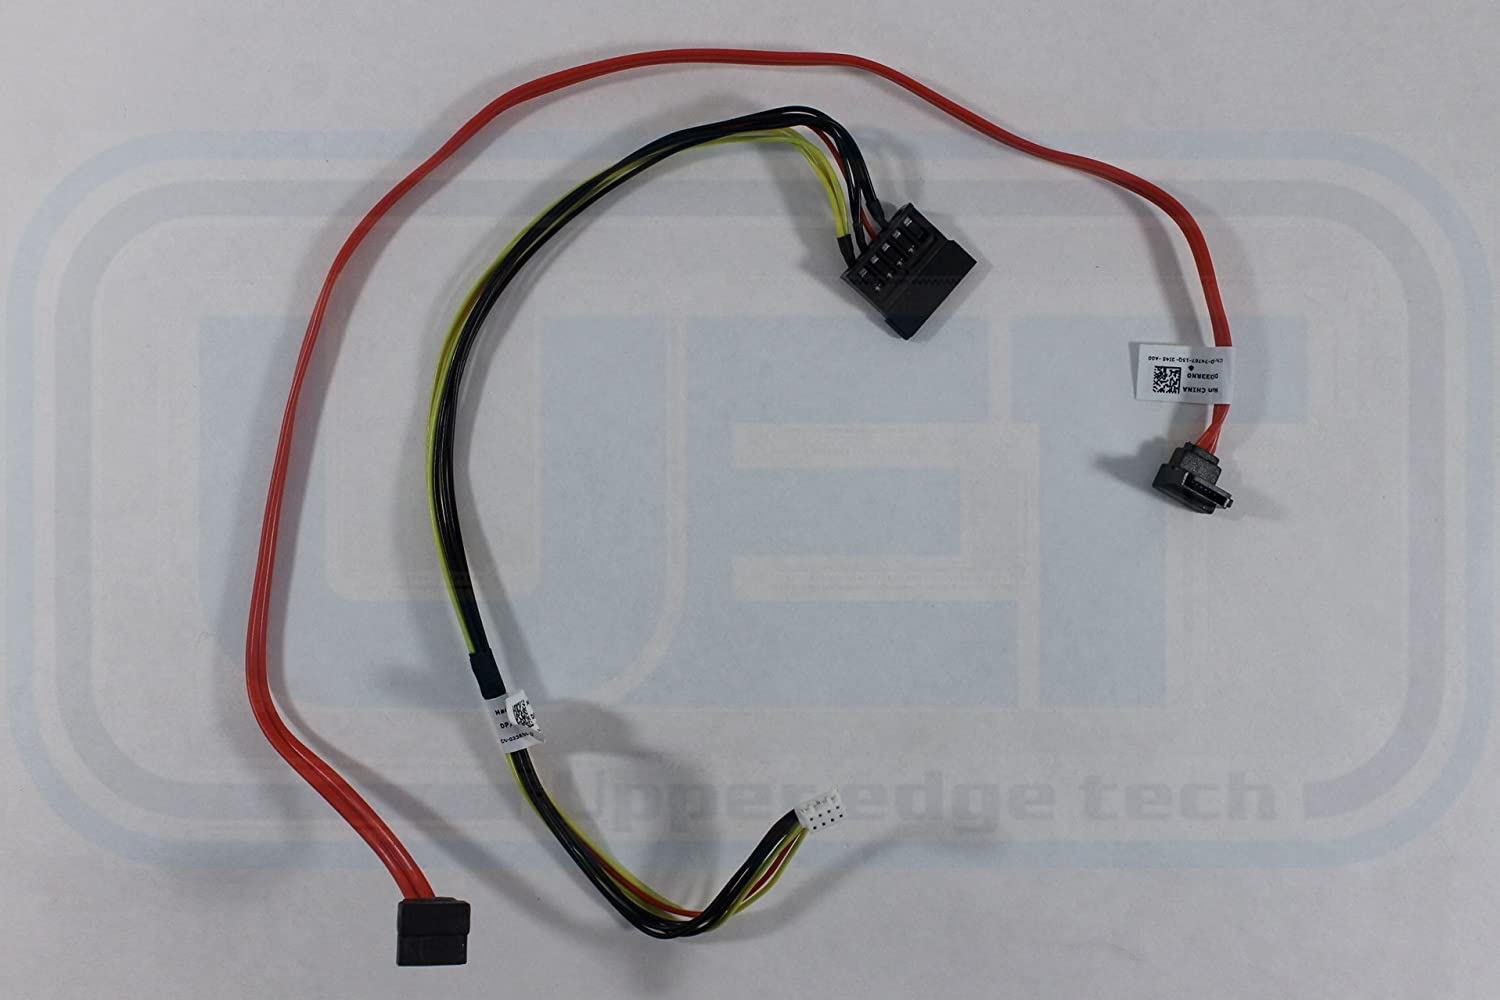 Dell Inspiron 2305 33RN0 HDD SATA Cable